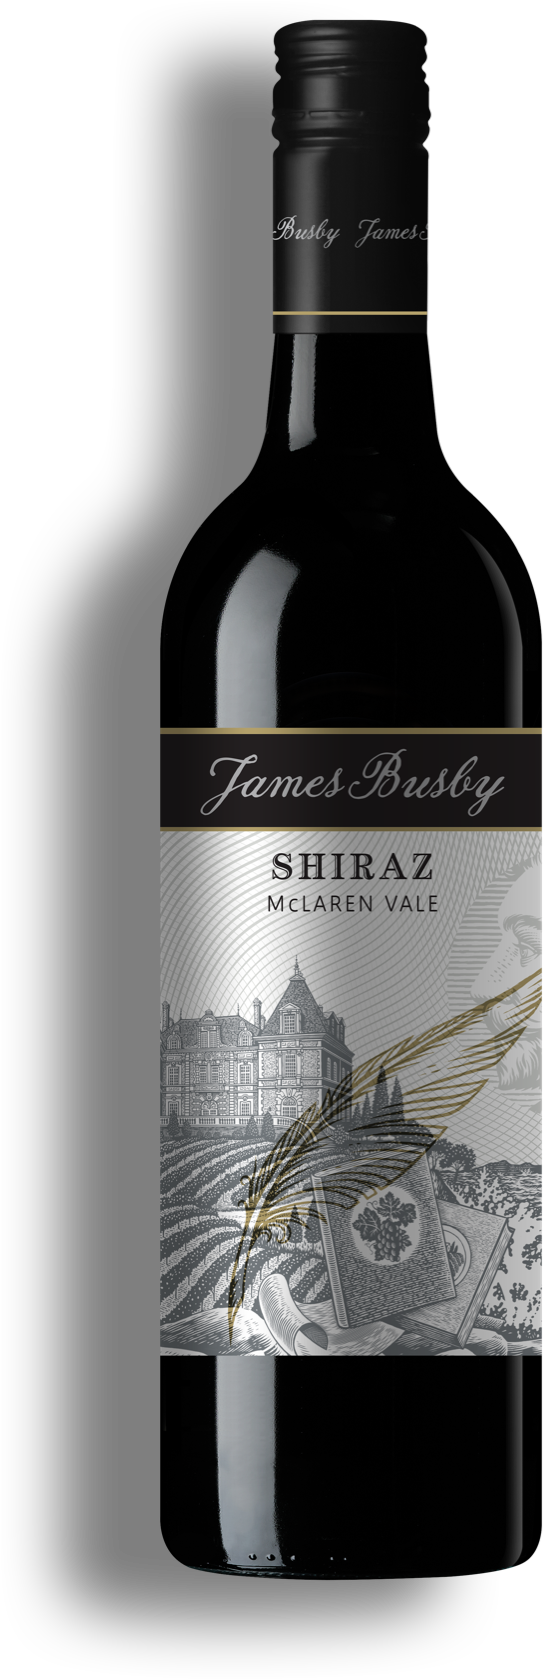 Shiraz wine bottle